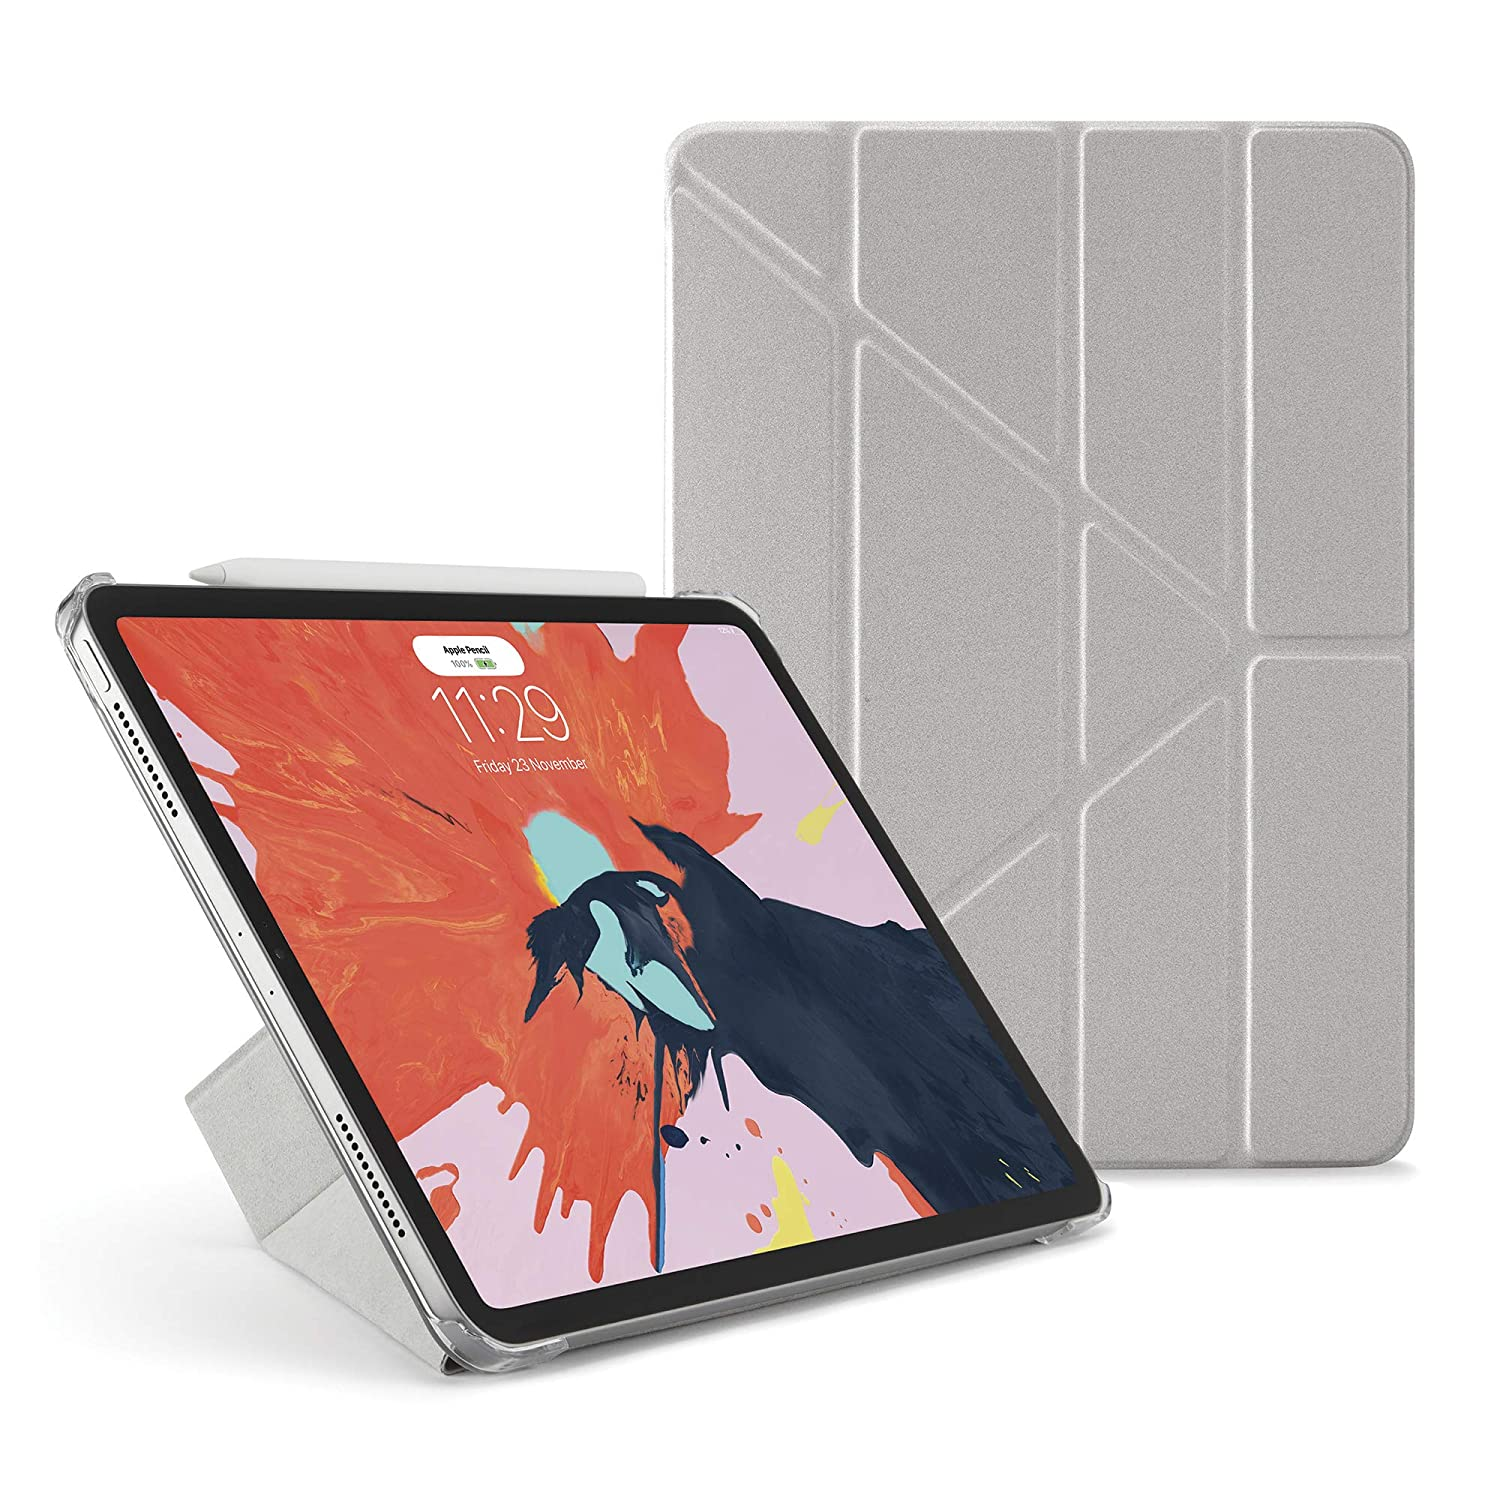 amazon com pipetto premium smooth ultra slim smart case shell coverpipetto premium smooth ultra slim smart case shell cover apple pencil gen 2 sync and charge compatible for ipad pro 11 (2018) model 5 in 1 folding positions